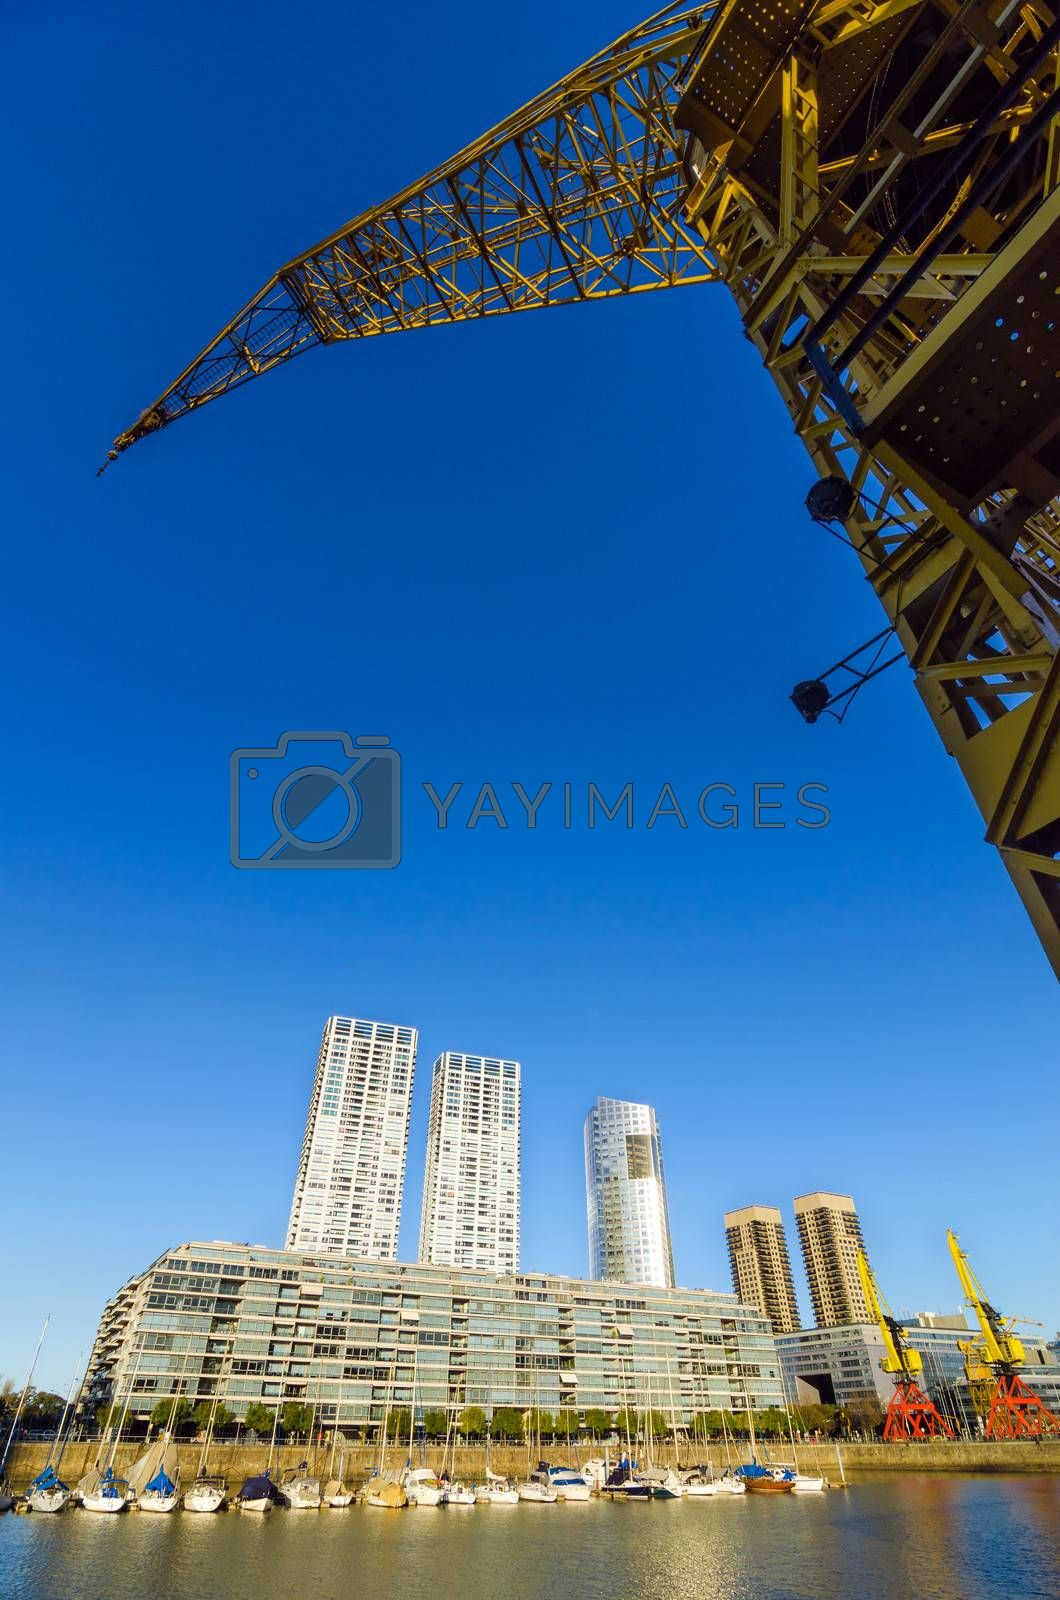 Waterfront of Puerto Madero in Buenos Aires, Argentina with a tall yellow crane rising above